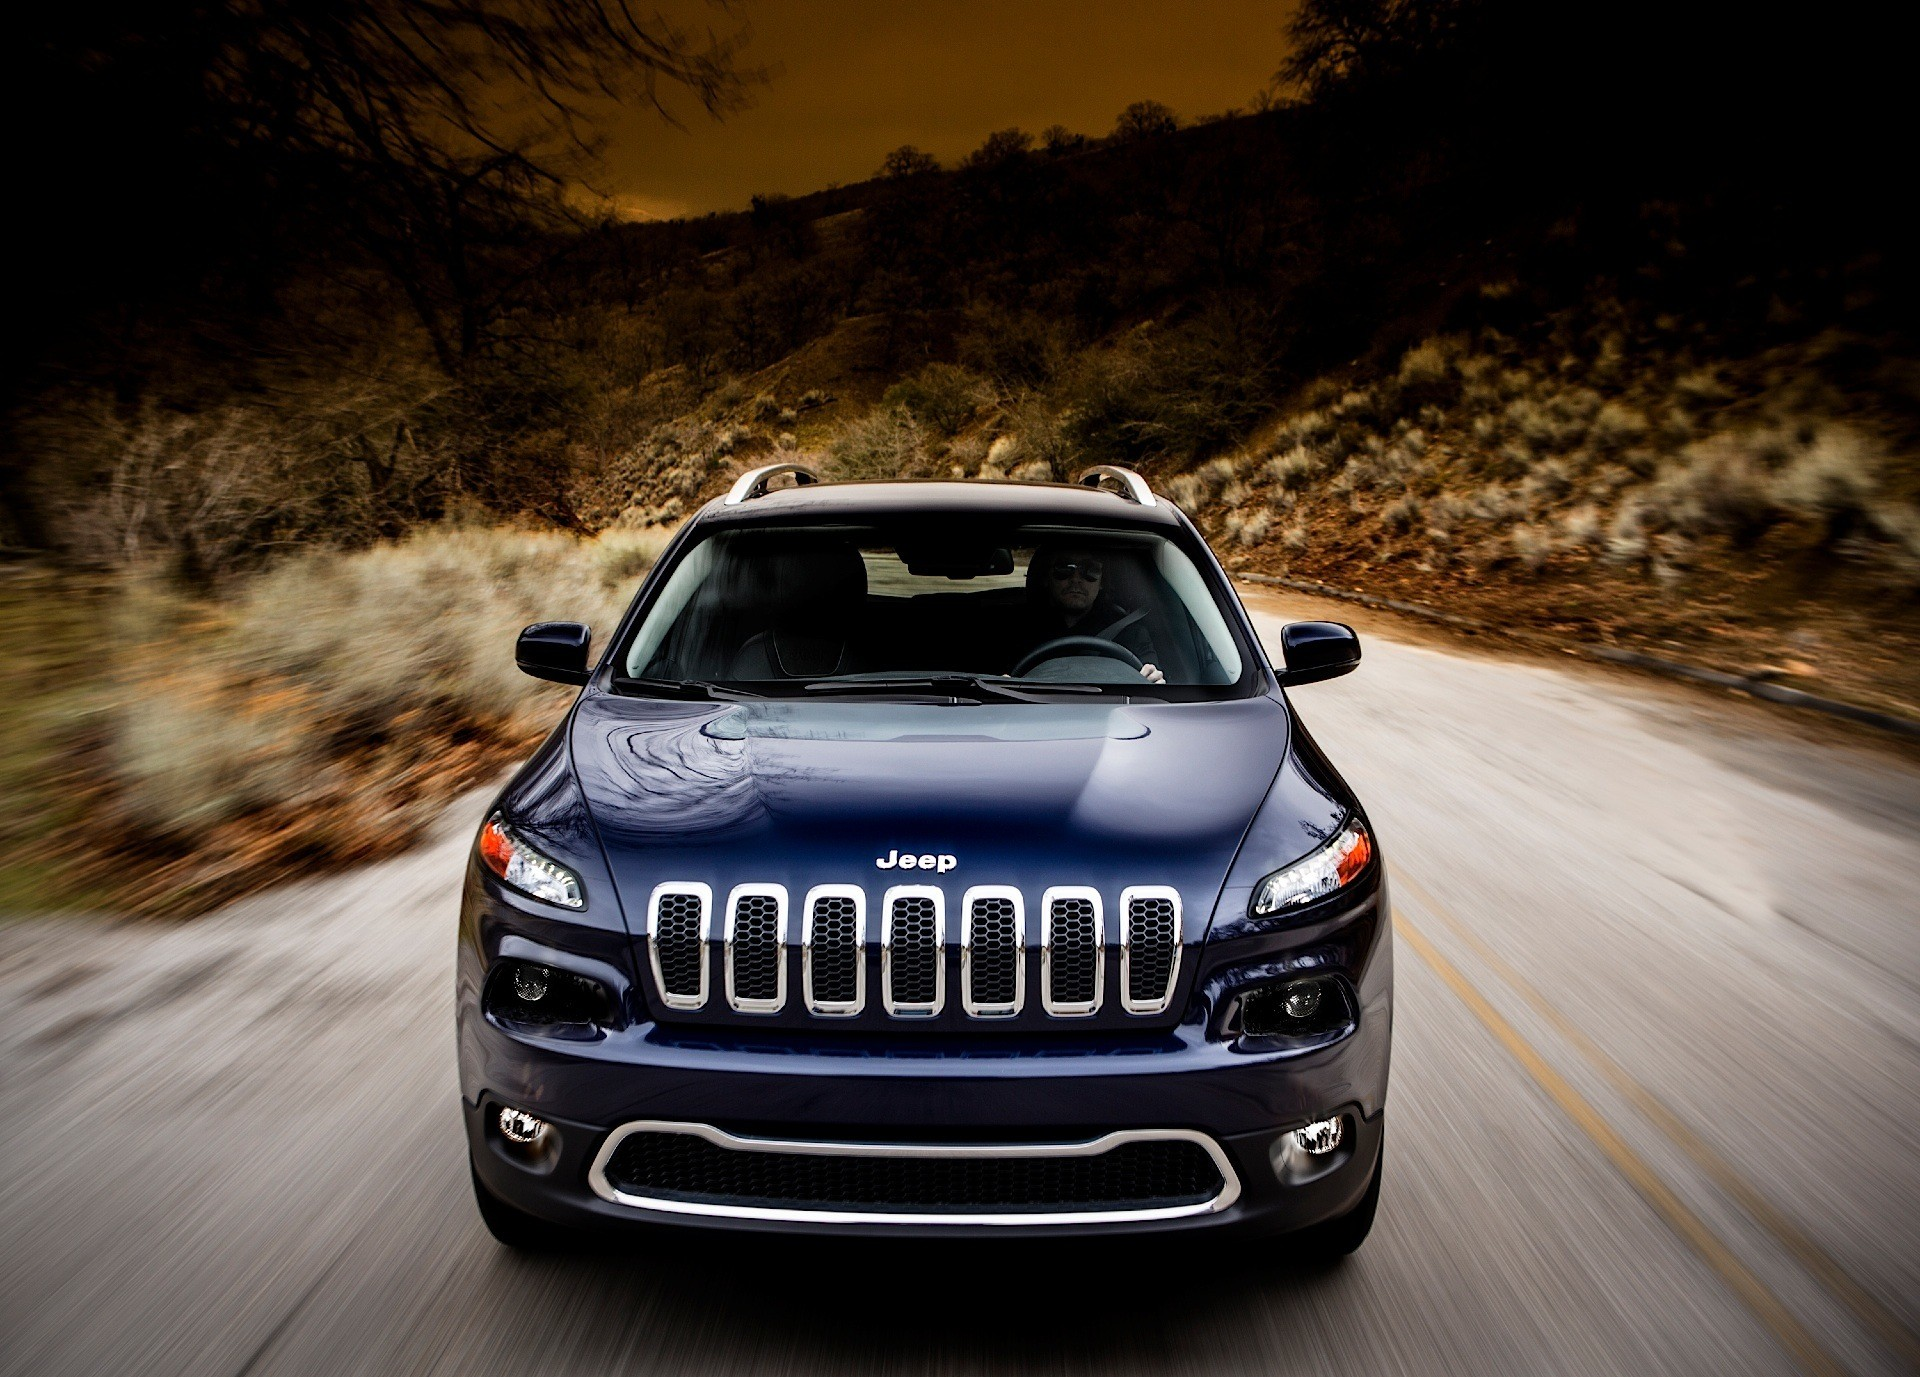 fiat chrysler automobiles will recall 410000 vehicles worldwide_2 fiat chrysler automobiles will recall 410,000 vehicles worldwide 96 Jeep Cherokee Wiring Diagram at gsmx.co